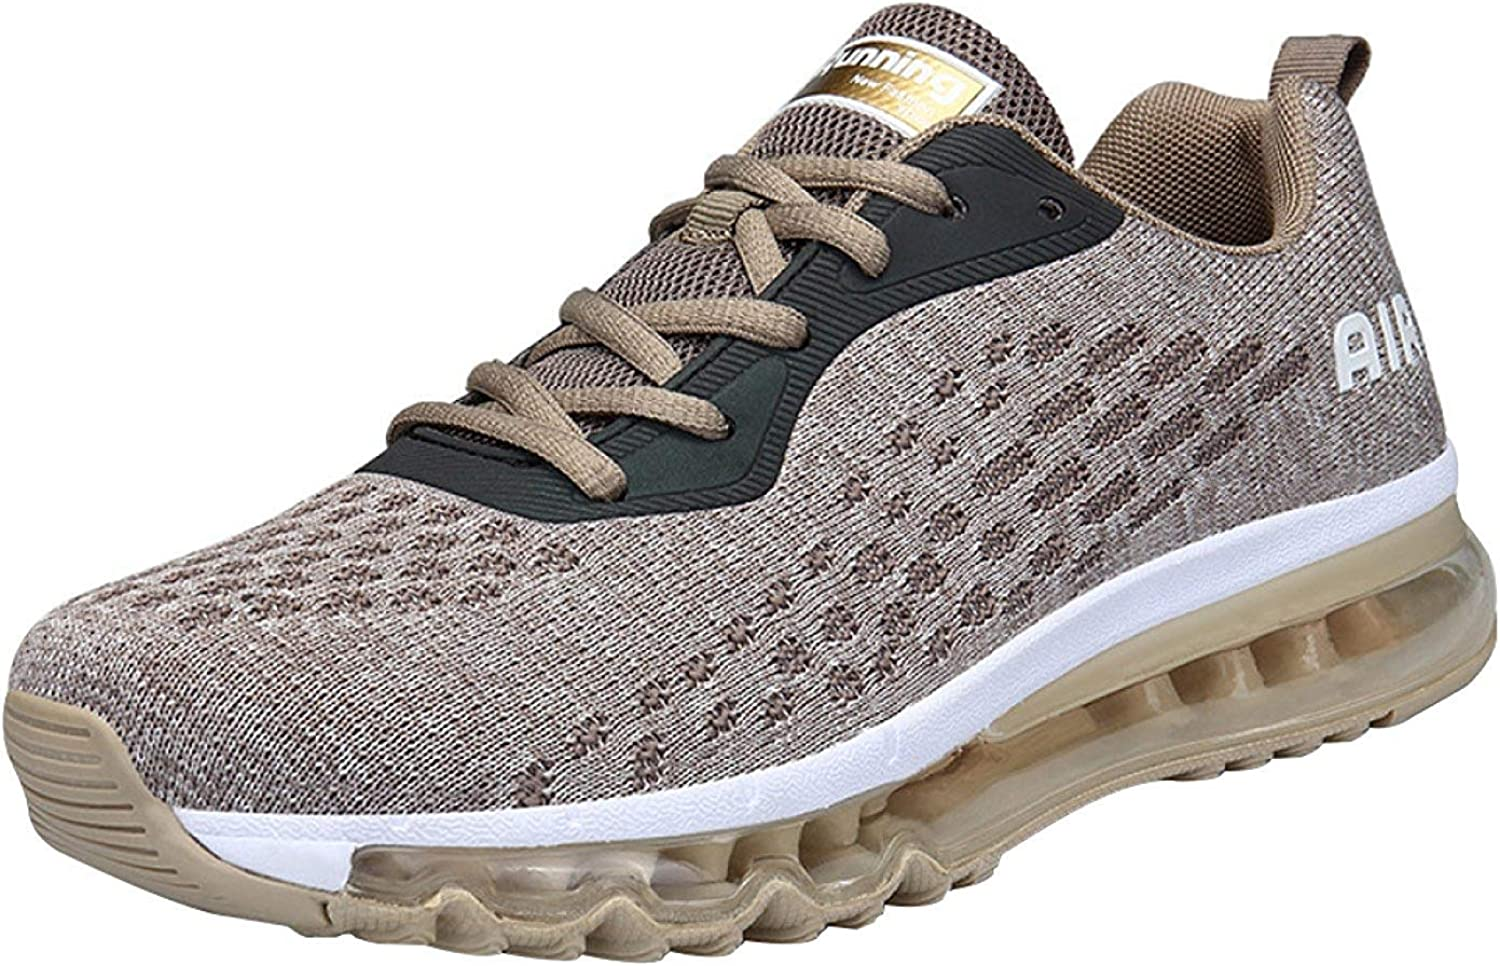 Unisex Breathable Running shoes Outdoor Leisure Sport shoes Fitness Air Cushion shoes Abrasion Resistant Shock Absorption (color   gold, Size   42EU)